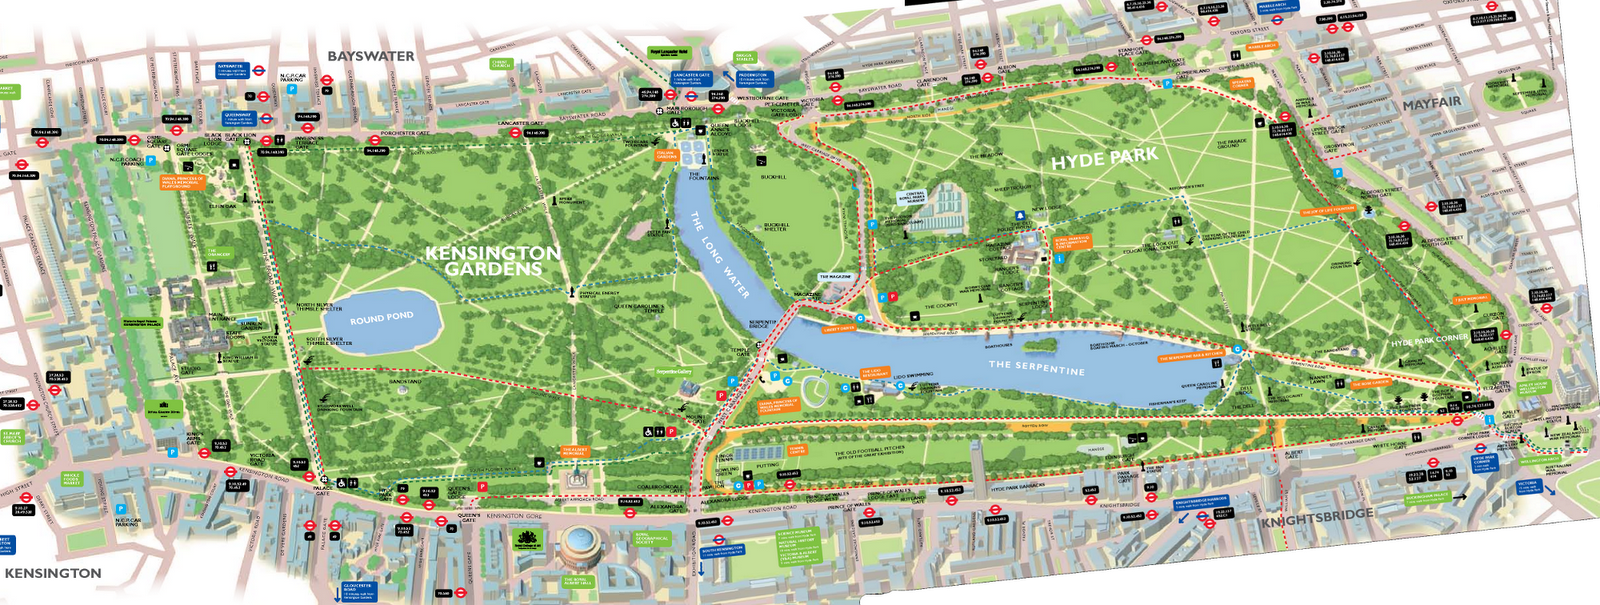 Kensington Park Map Hyde Park and Kensington Gardens, London | Been There Done That in